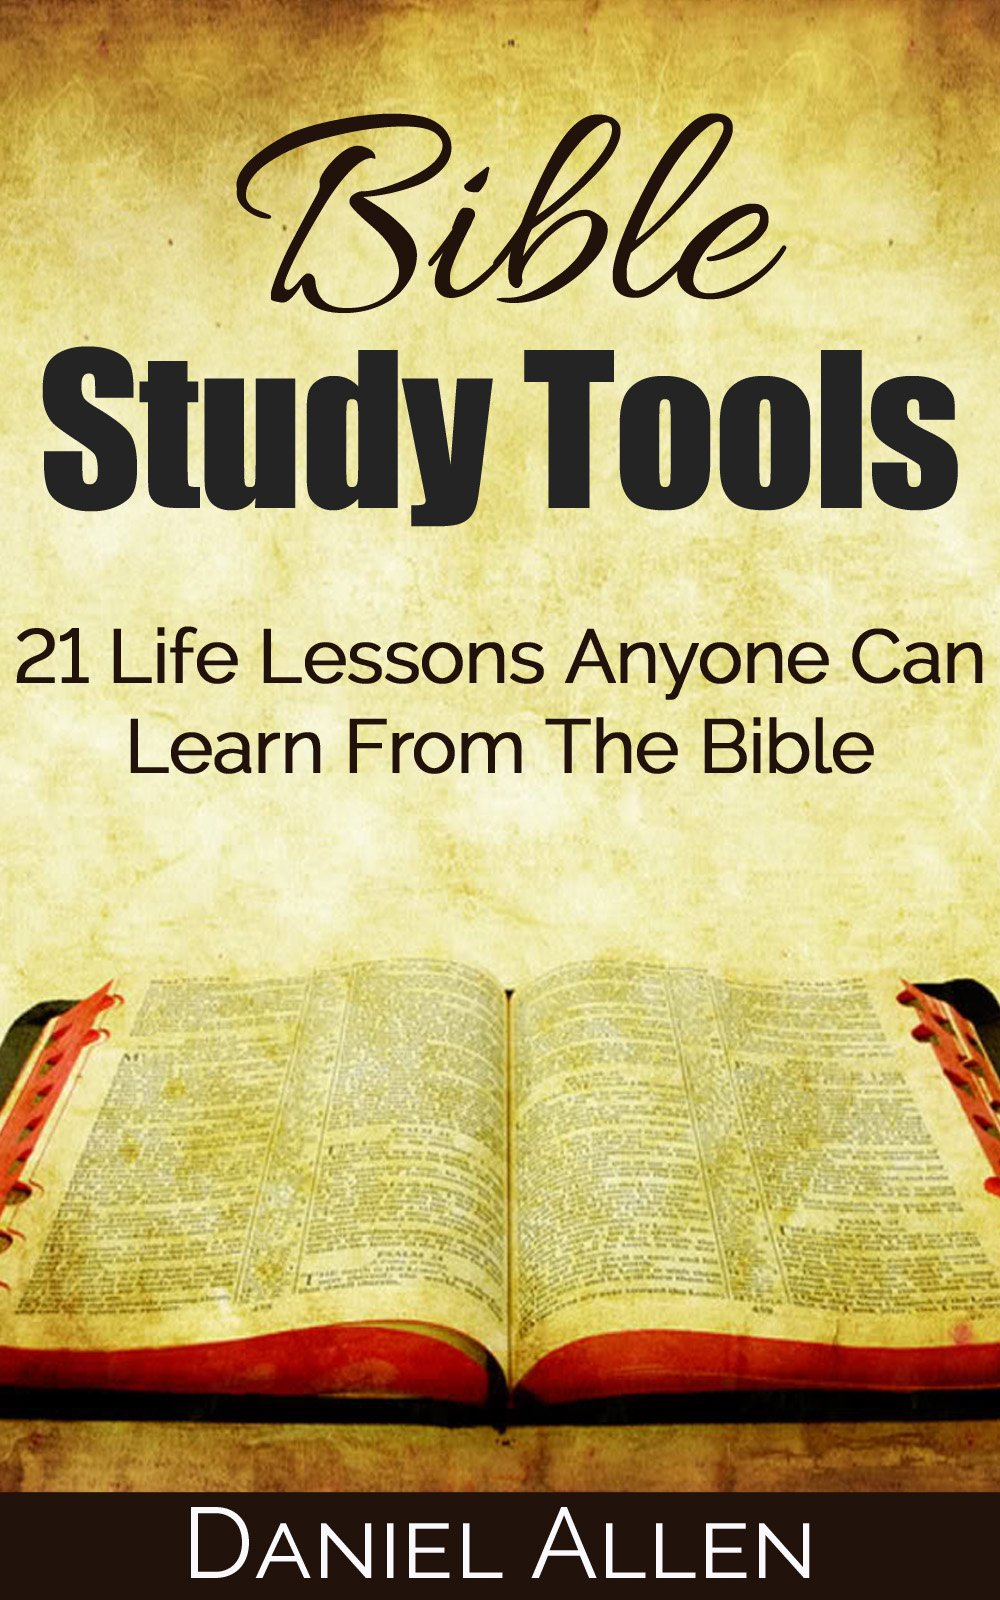 Bible Study Tools  21 Life Lessons Anyone Can Learn From The Bible  Life Lessons Bible Verses Know Your Bible Inspirational Bible Verses Bible Commentary Bible Study   English Edition